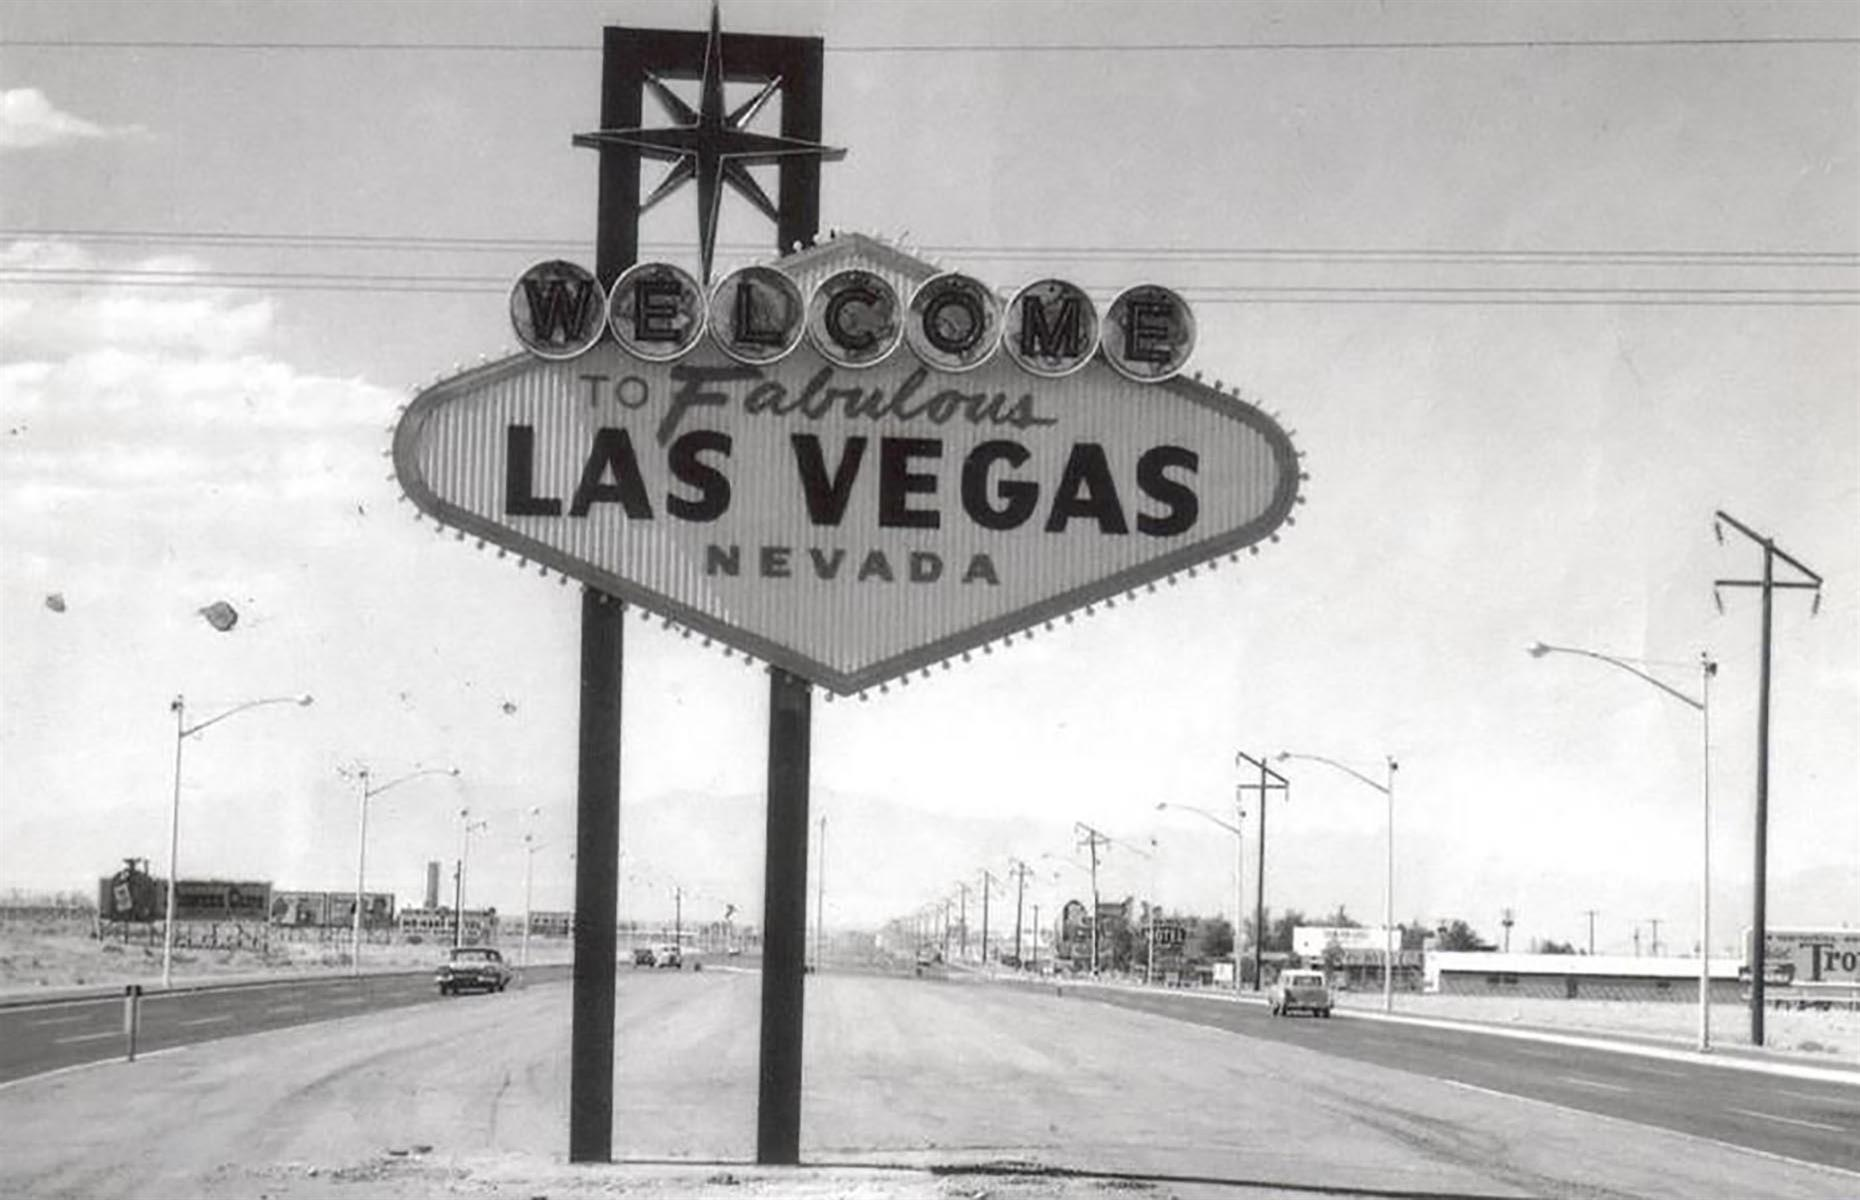 Slide 20 of 34: Today the Welcome to Fabulous Las Vegas sign is recognized all over the world. The original sign (there are three replicas) stands at what is considered the southern end of the Las Vegas Strip. The sign was built and installed in 1959 by Western Neon and it was designed by Betty Willis, an employee of the company. She considered it a gift to the city so there is no copyright on it. Funnily enough, it's never marked the actual city limits of Las Vegas. Even today it sits around four miles (6km) from the actual city of Las Vegas.